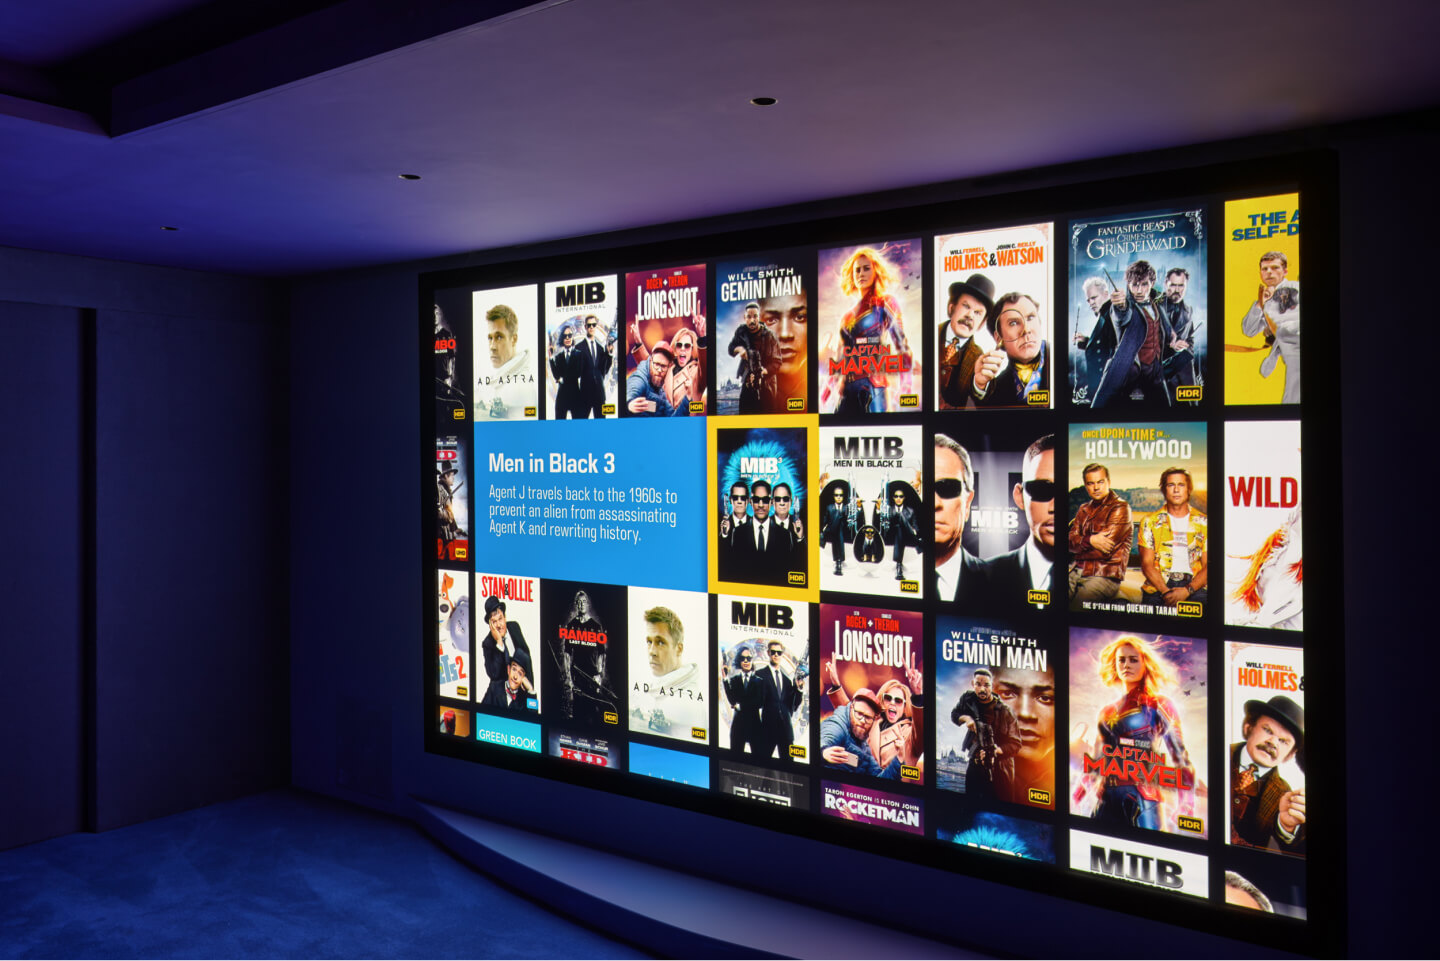 Big screen movies in your own home